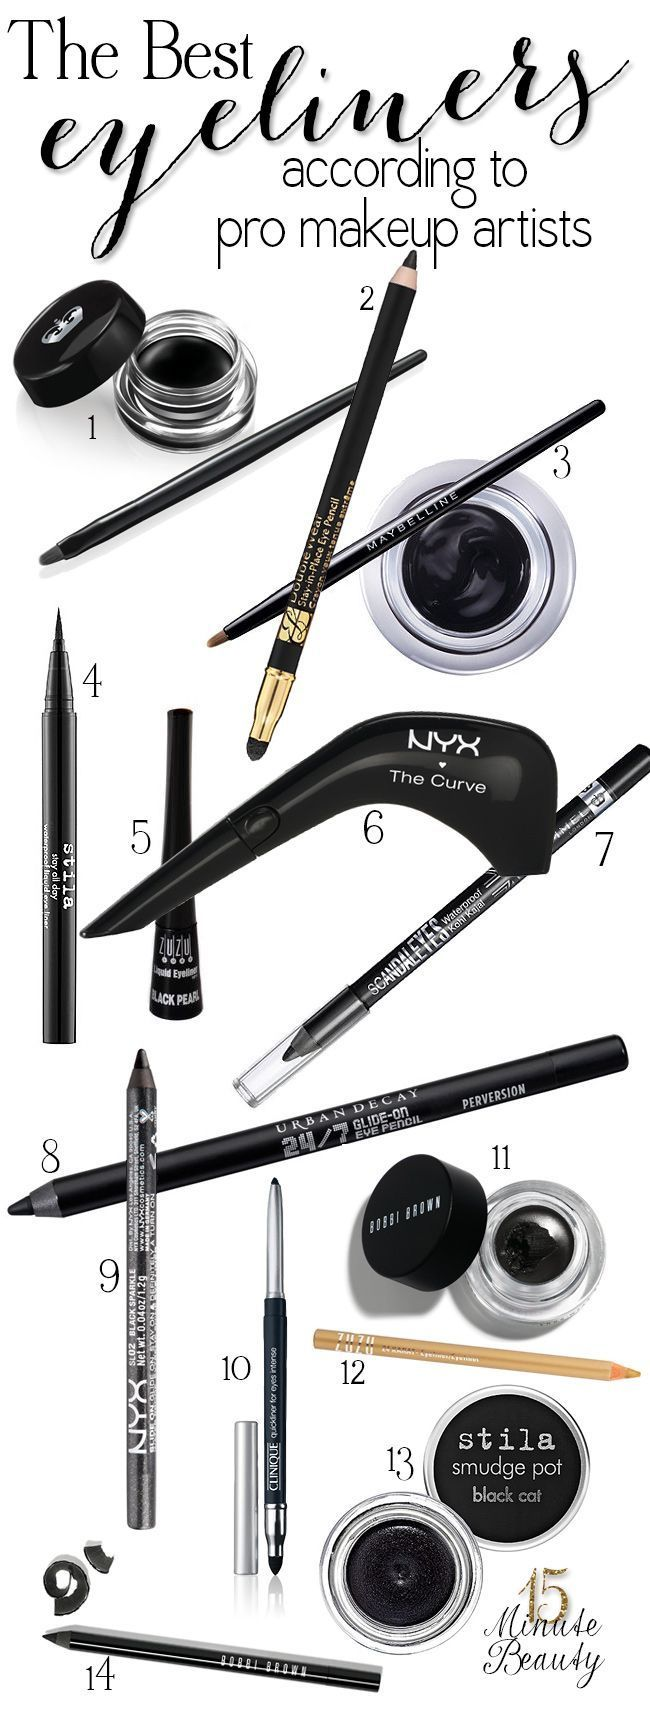 15 Minute Beauty Fanatic: The Best Eyeliners According to Makeup Artists Like this.